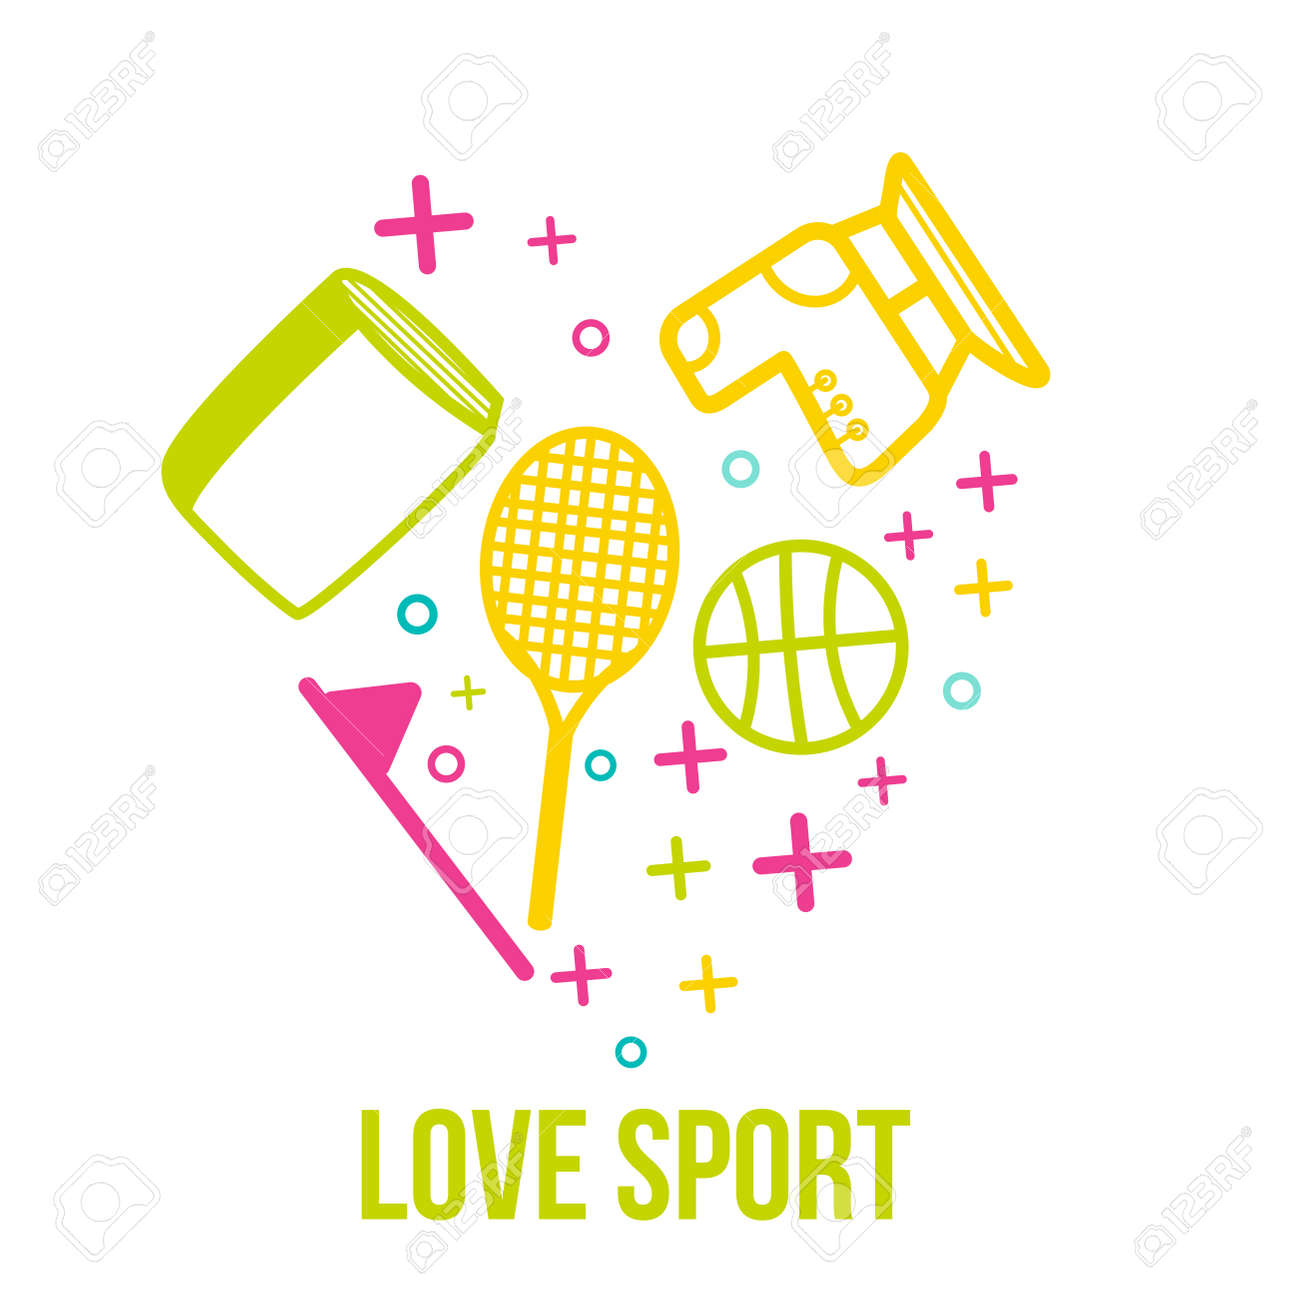 Love sport symbol in heart shape frame with line art sport icons love sport symbol in heart shape frame with line art sport icons and healthy lifestyle elements buycottarizona Image collections